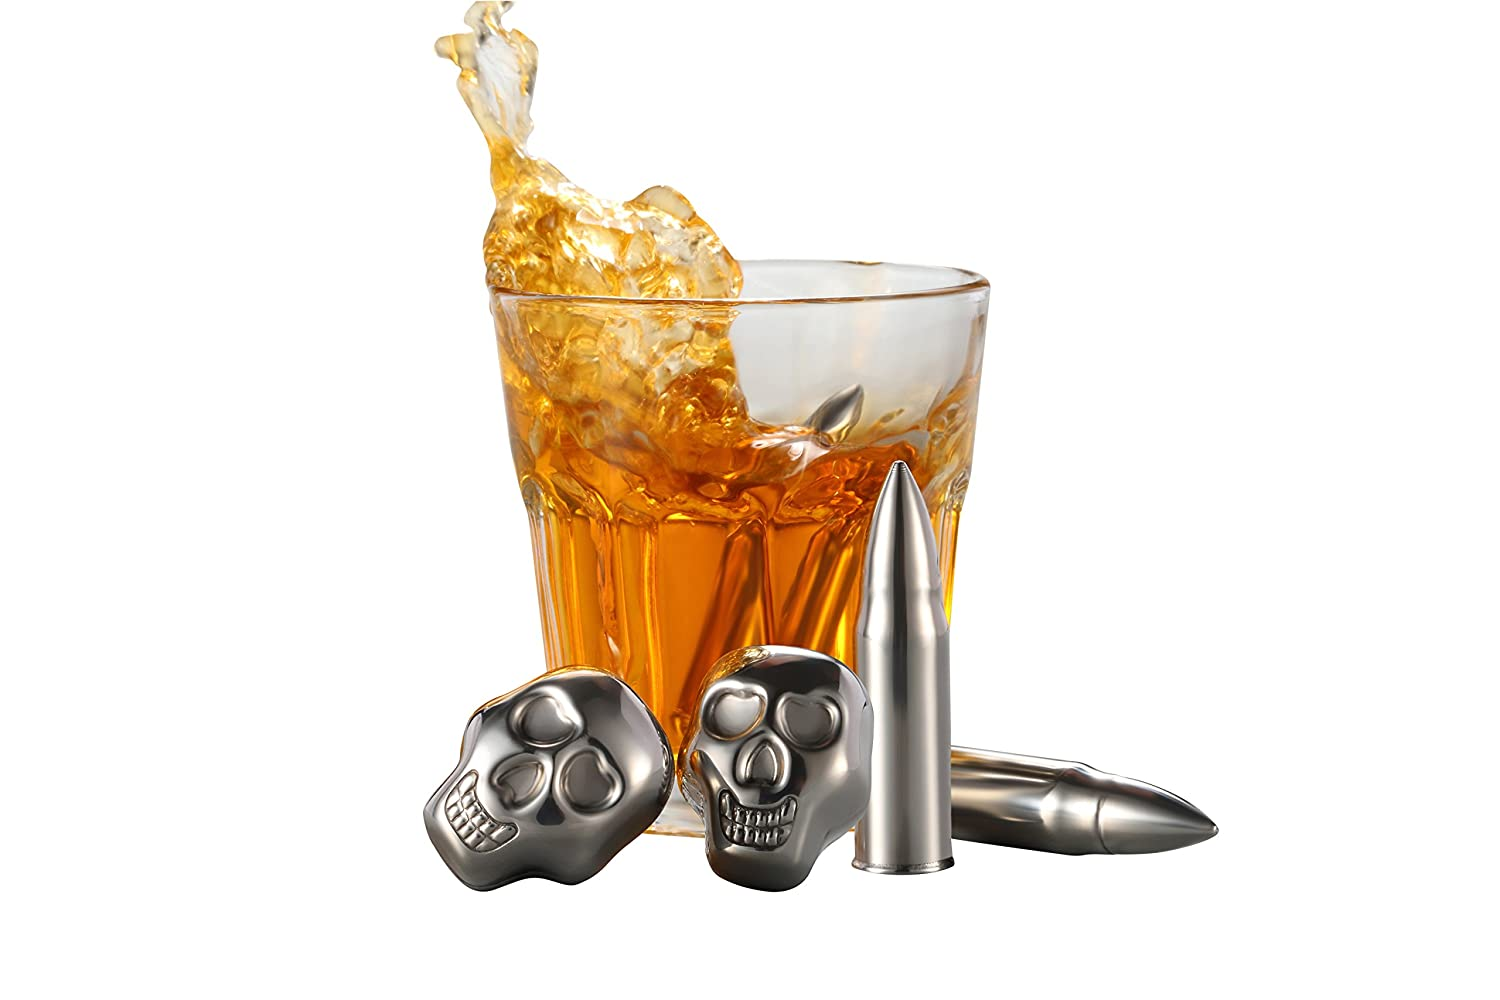 AmazeFan Food Grade Stainless Steel Wine Chilling Cubes, Multi Color Stainless Steel Reusable Wine Ice Cubes, Chilling Rocks, Wiskey Stones Pack of 8 (4 Skulls plus 4 Bullets) NbTech